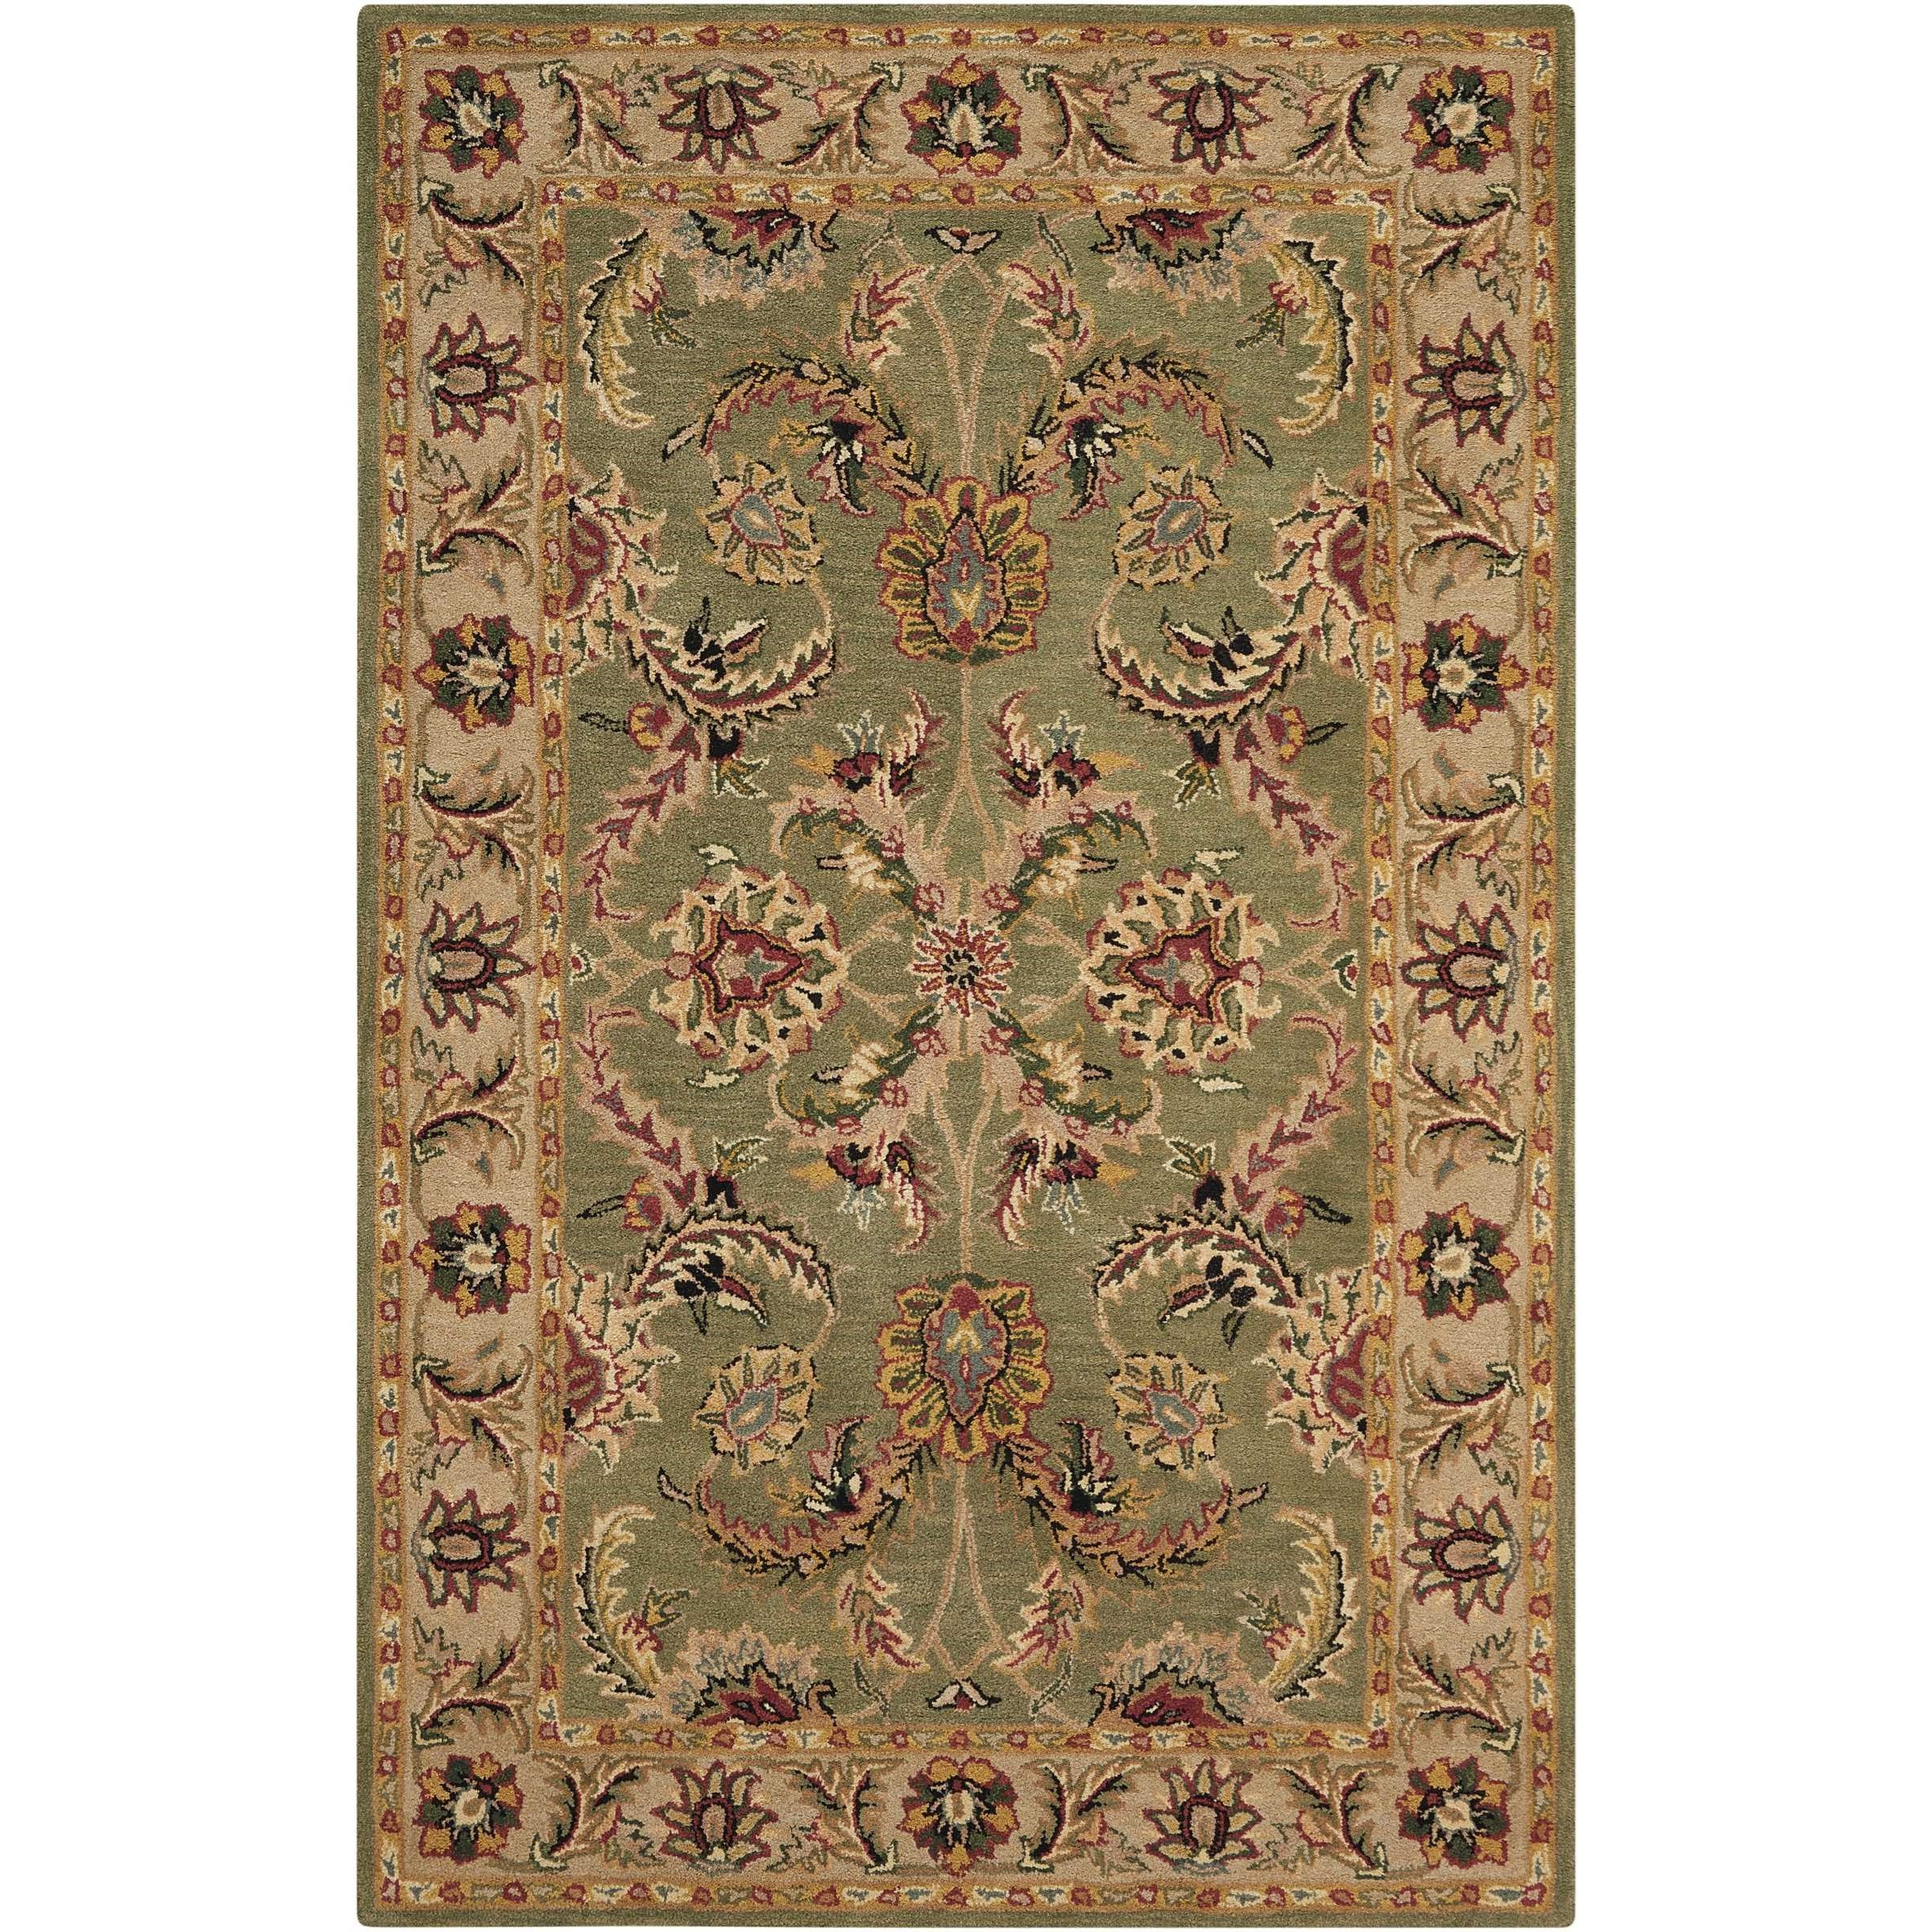 Nourison India House 5' x 8' Green Rectangle Rug - Item Number: IH18 GRE 5X8